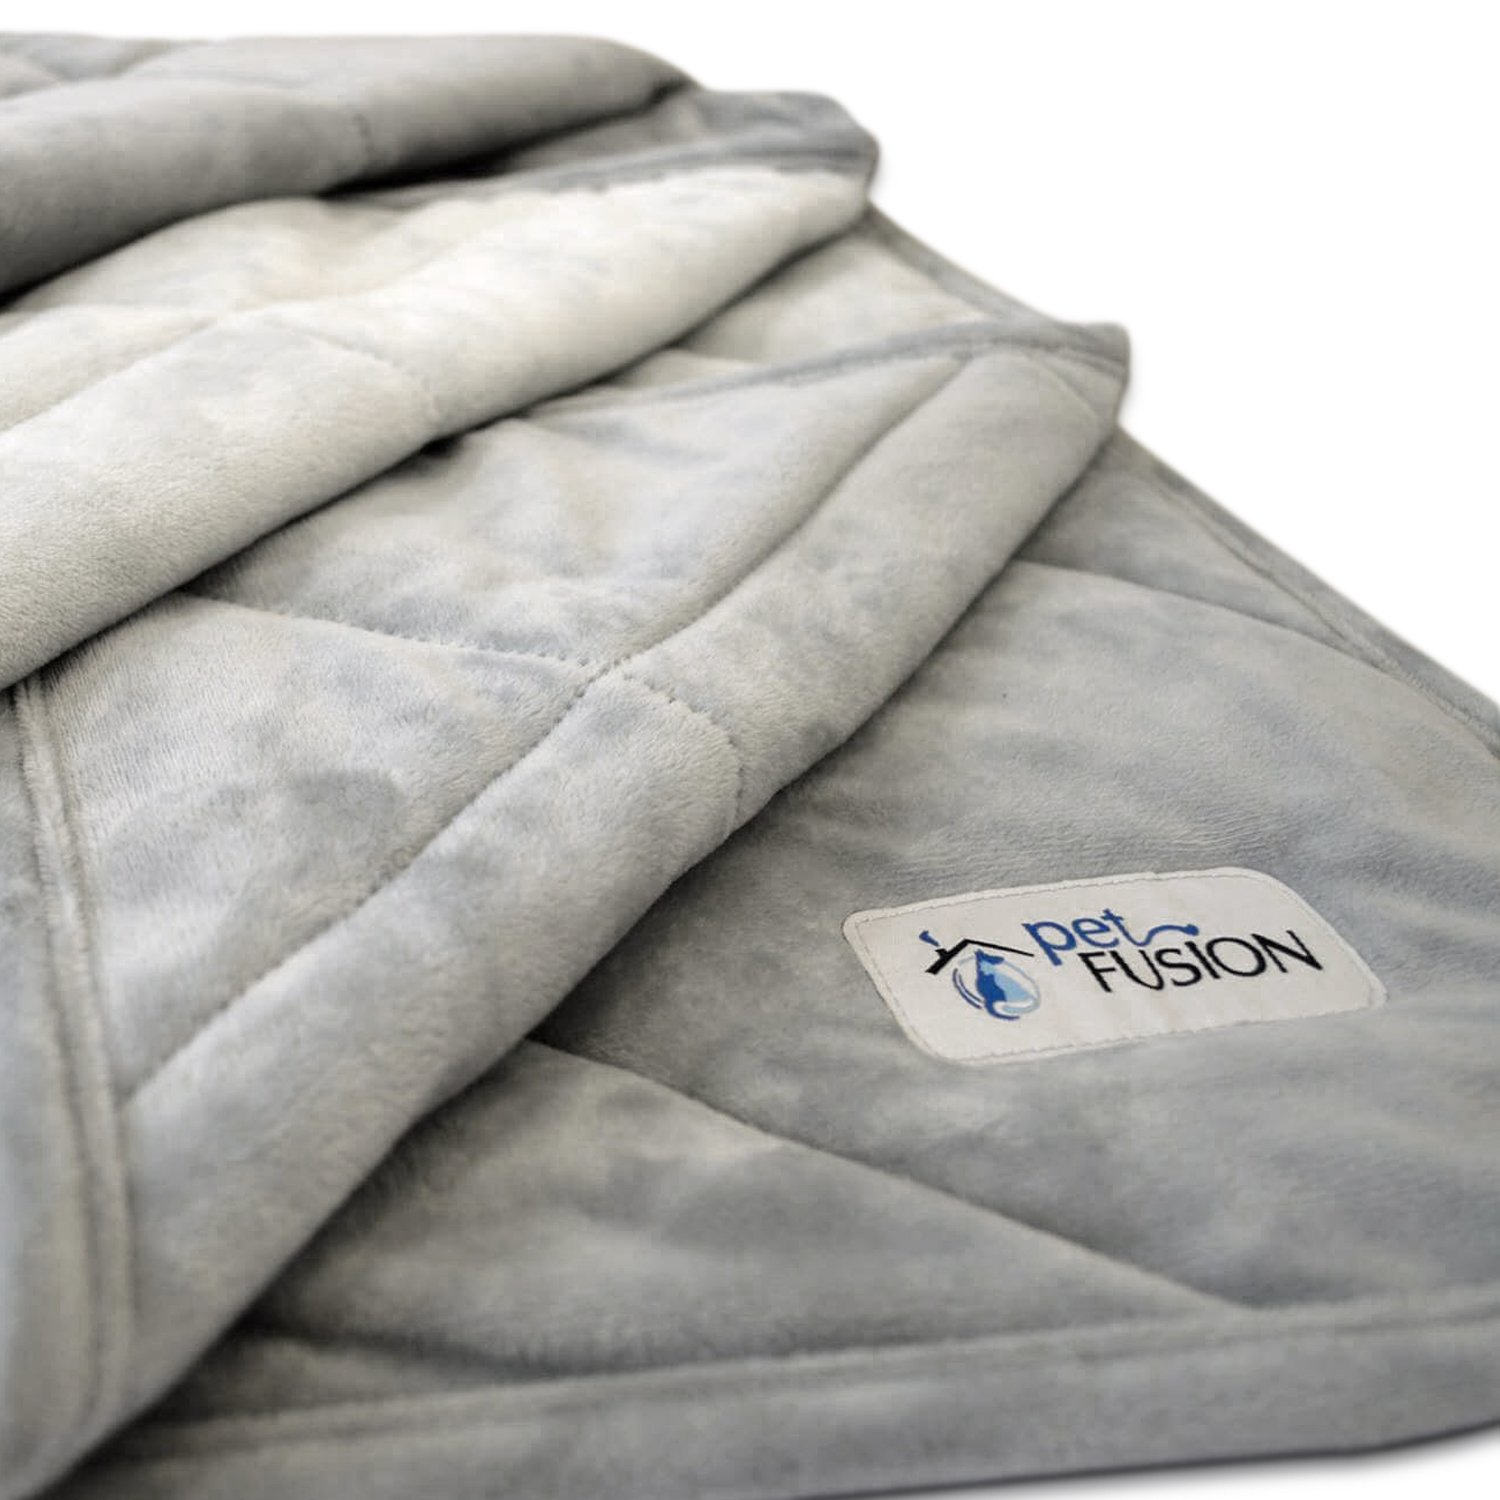 PetFusion Premium Plus Quilted Dog and Cat Blanket. Light Inner Fill 70GSM, Reversible Gray Micro Plush. [100% soft polyester]